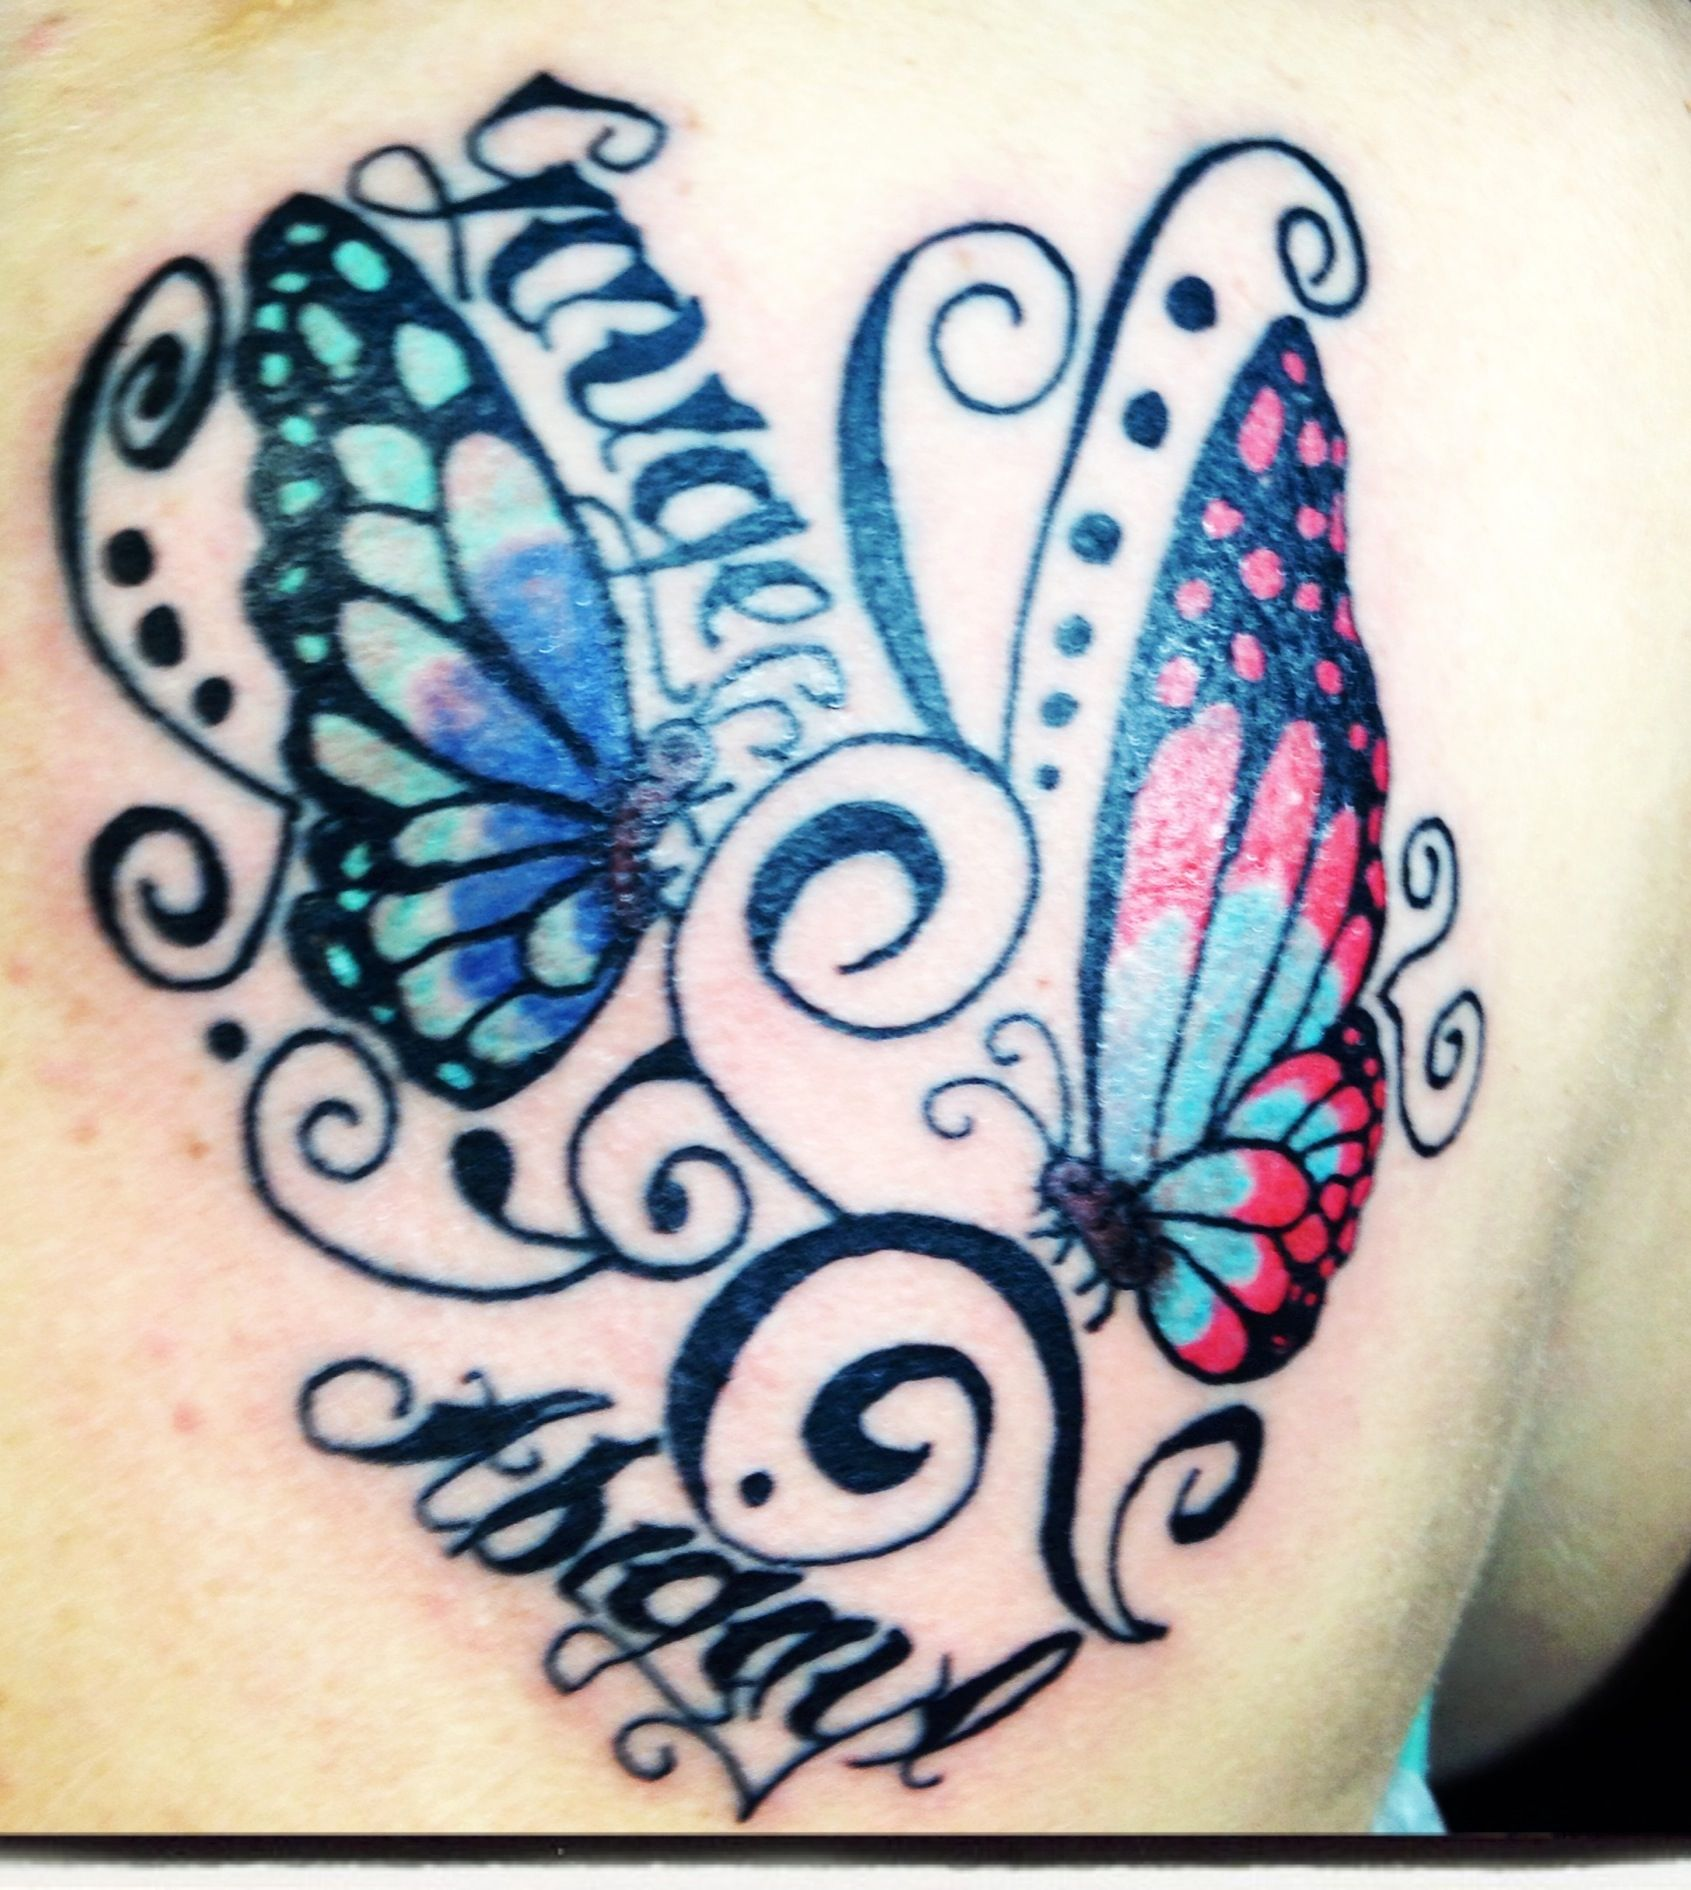 c4e4d04aa Butterfly Tattoo with children's names. Butterfly Tattoo with children's  names Tattoos ...